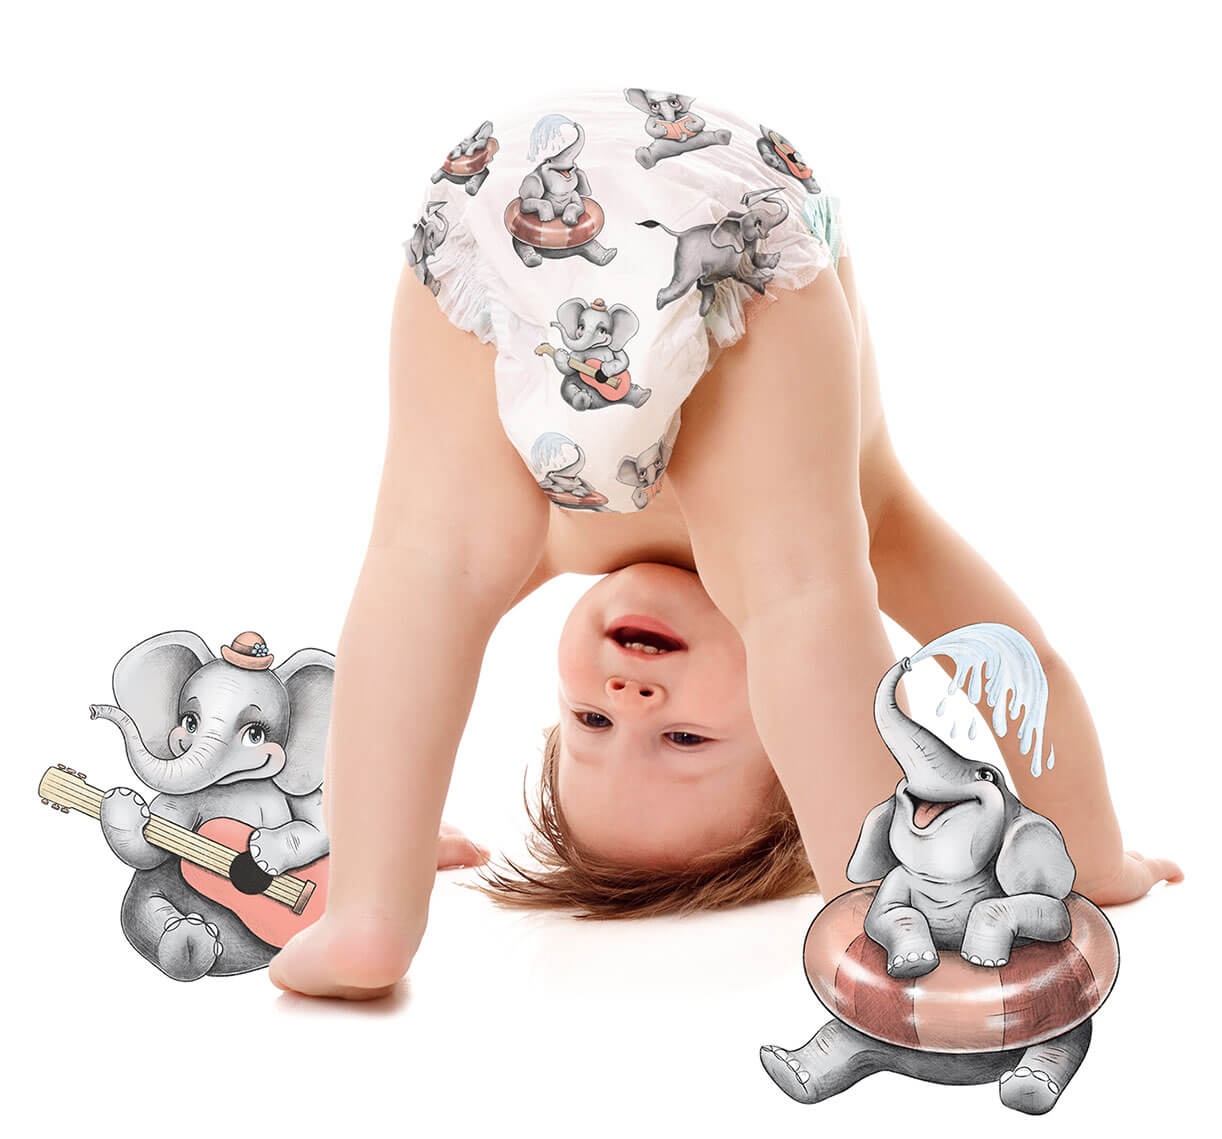 Baby with elephant pattern diapers